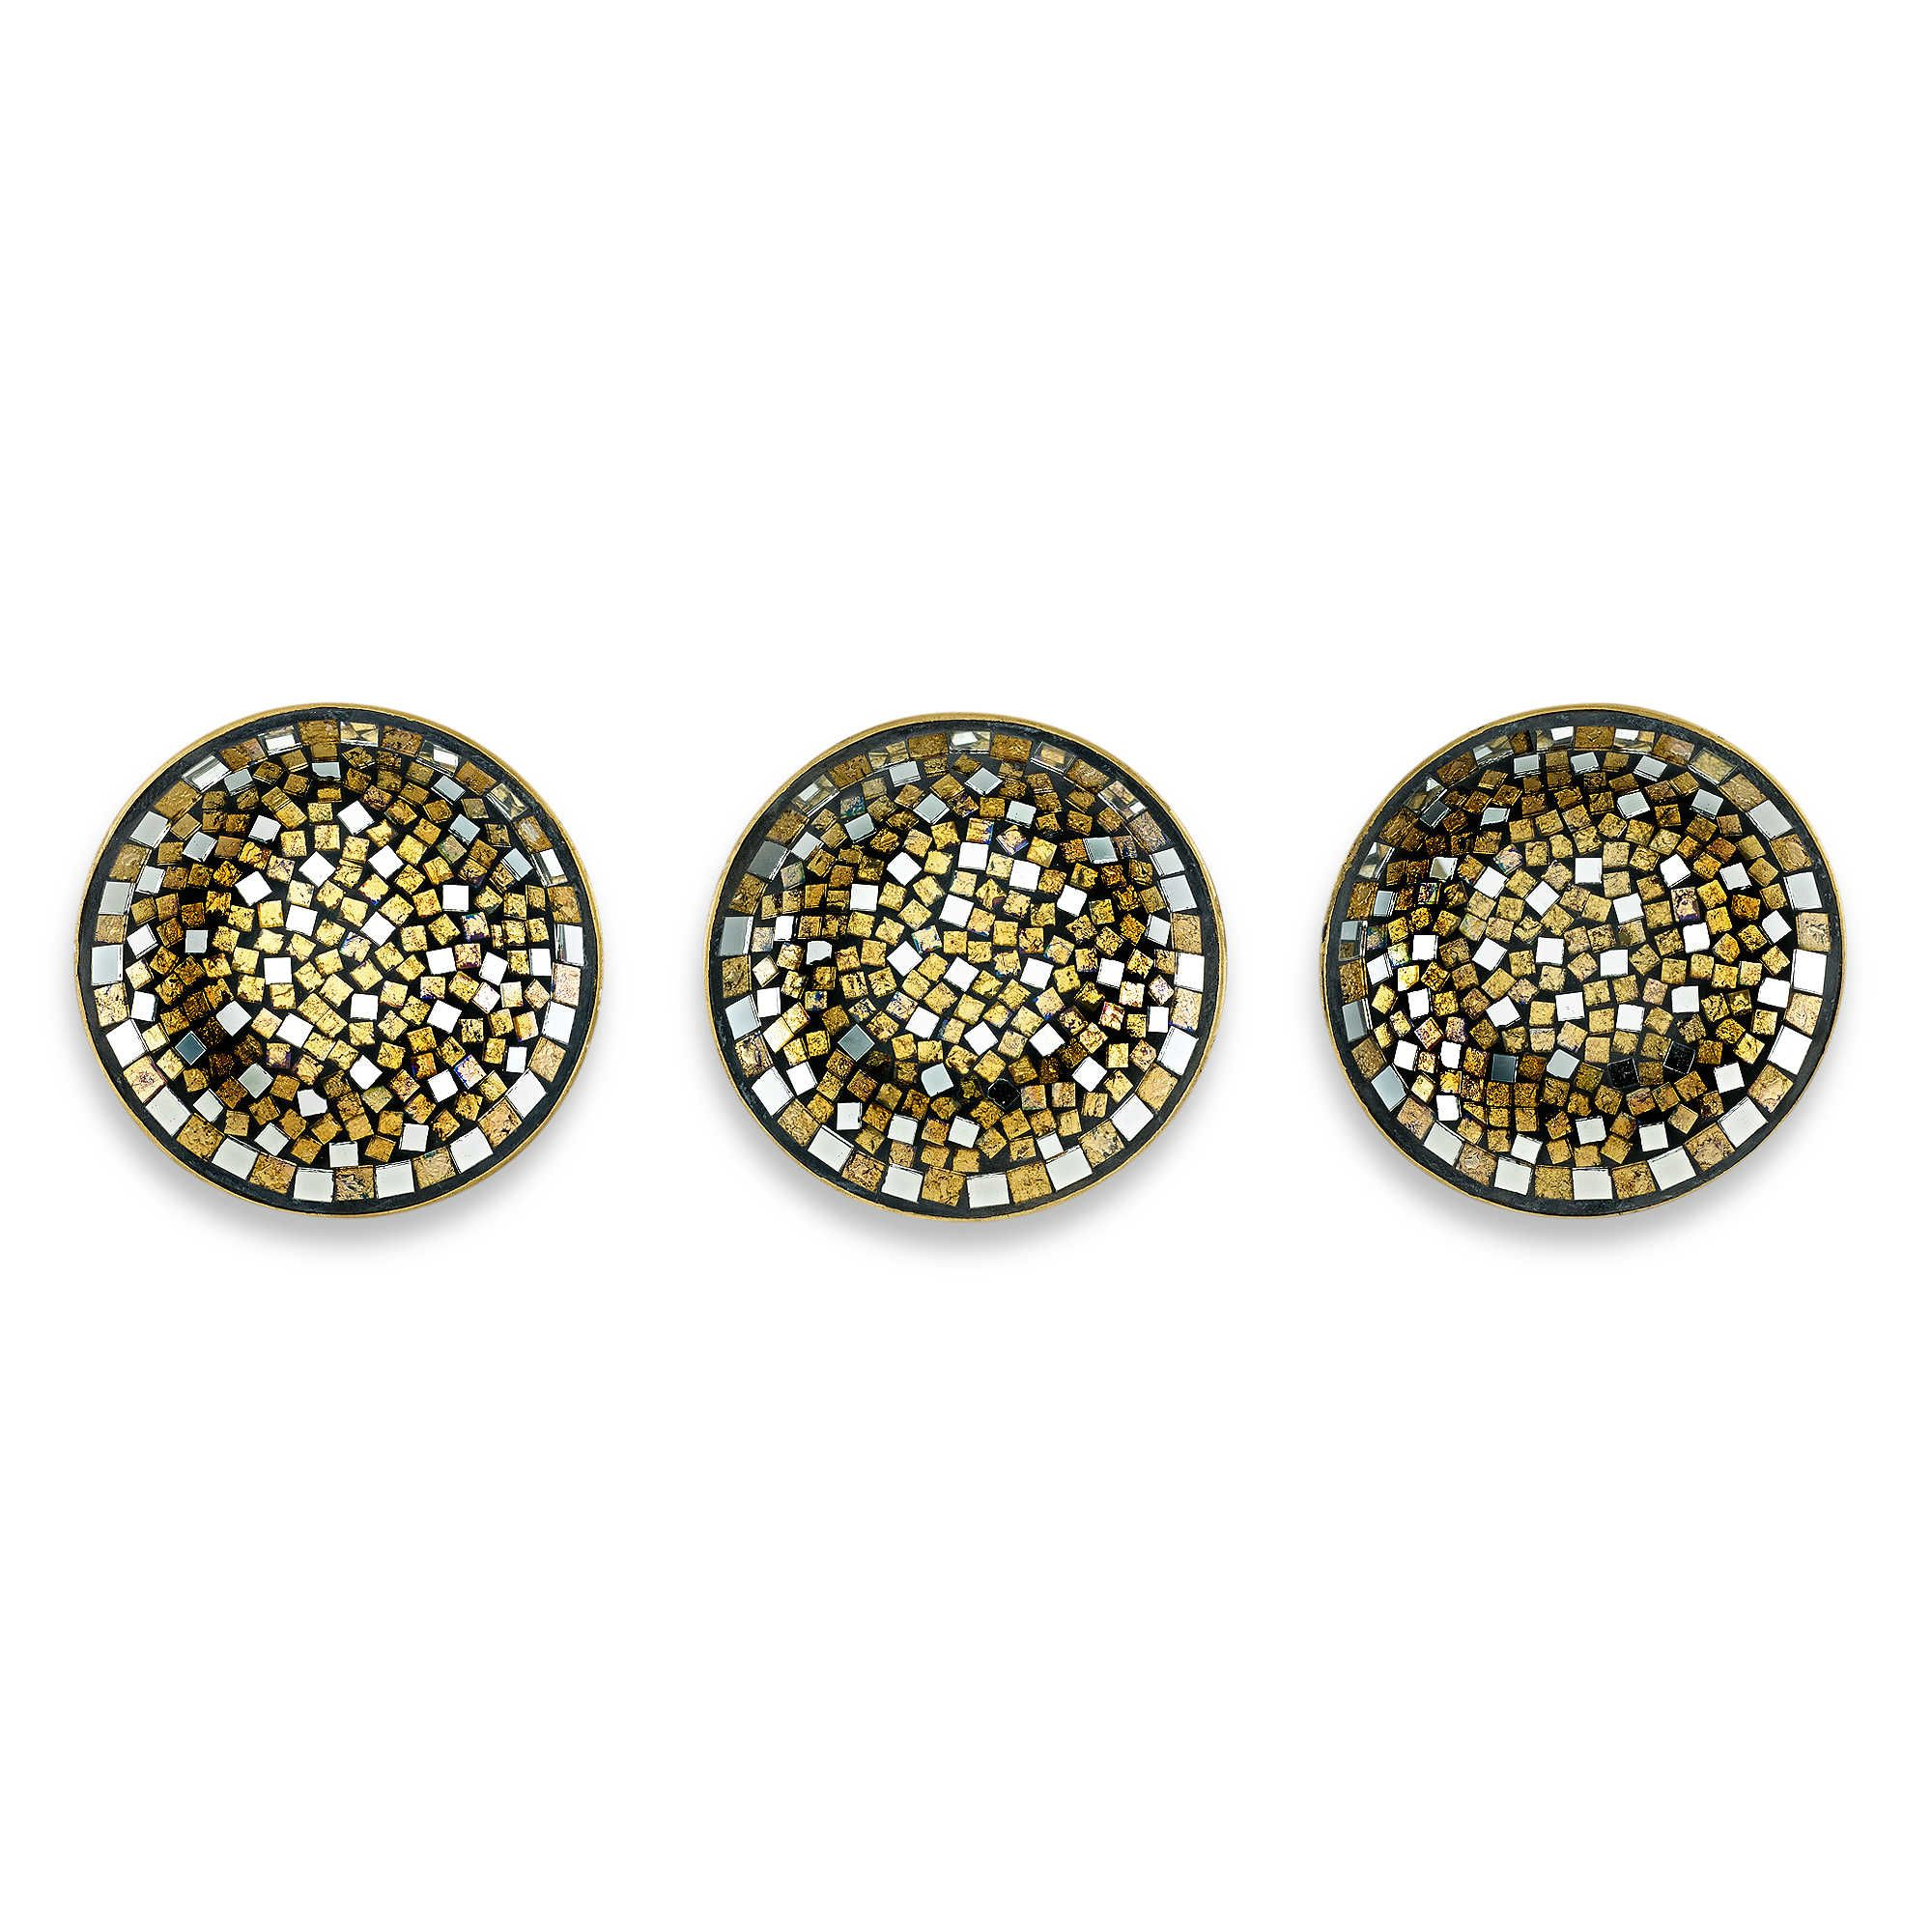 Mosaic Bronze Plate Set Wall Décor Of 3